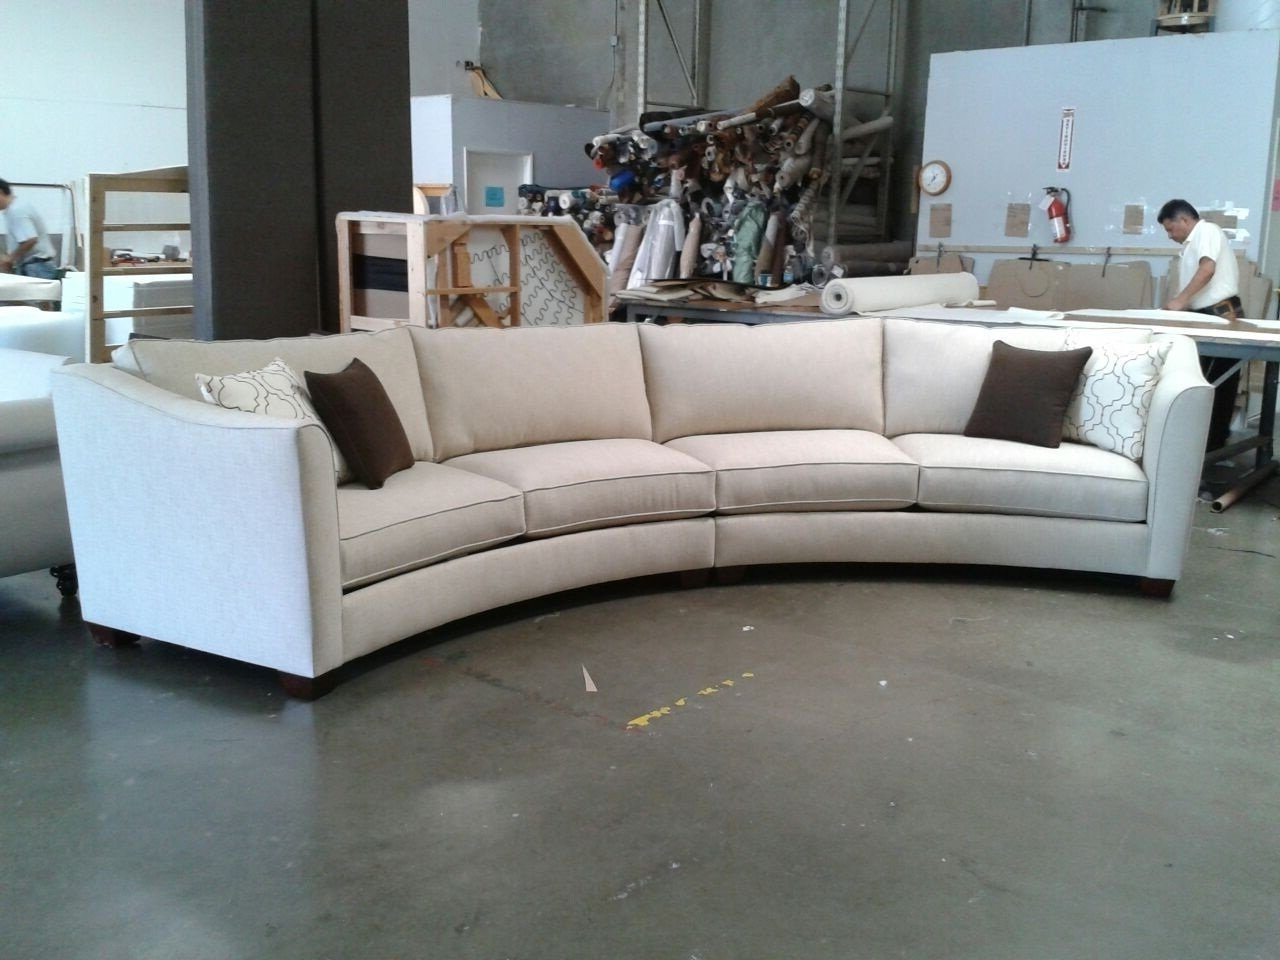 Newest Curved Sectional Sofa Design — Cabinets, Beds, Sofas And Throughout Rounded Sofas (View 8 of 15)